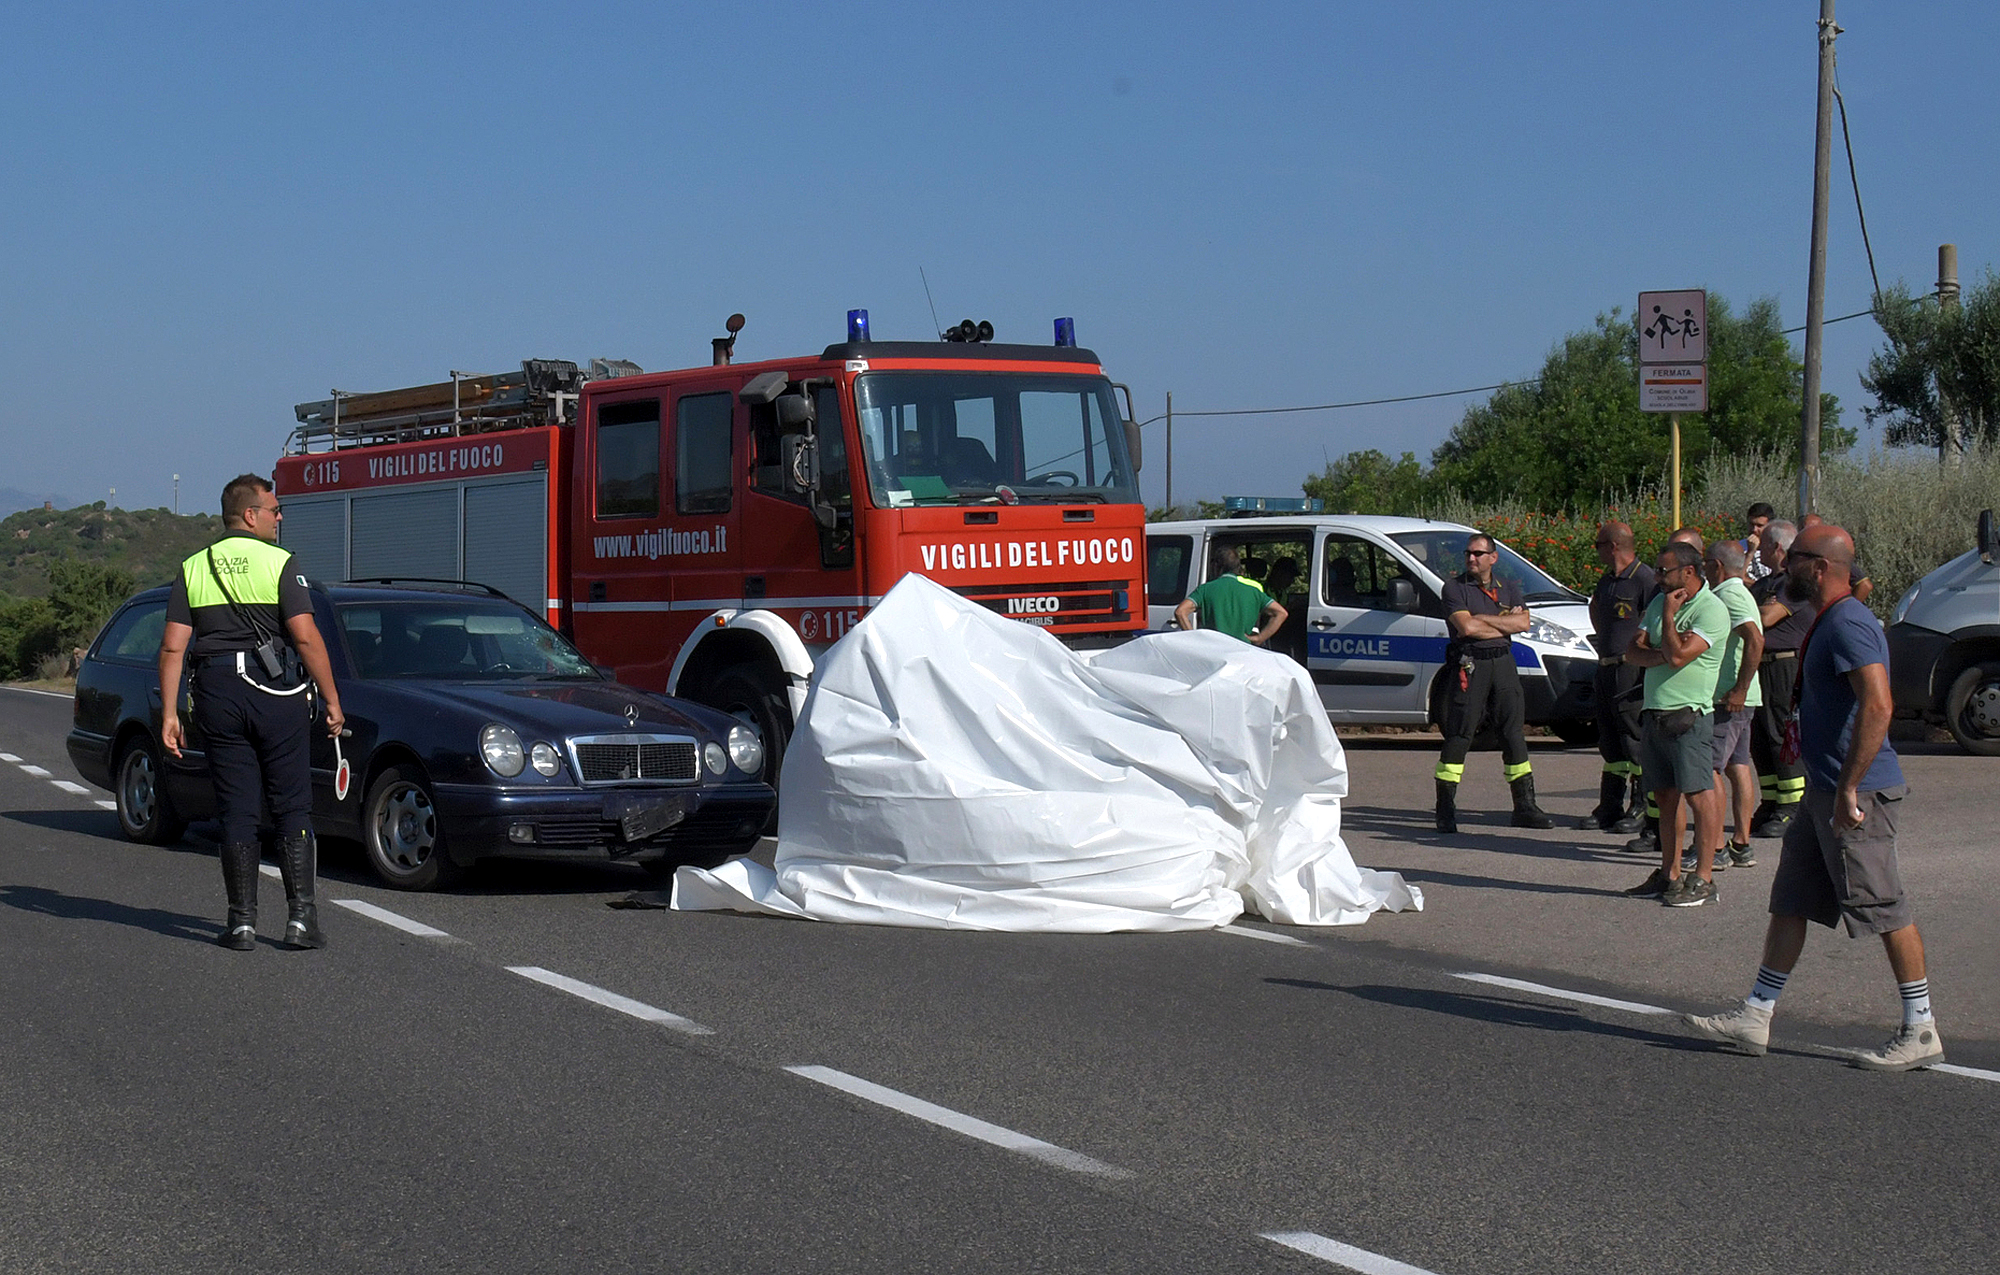 Scene of George Clooney accident in Italy